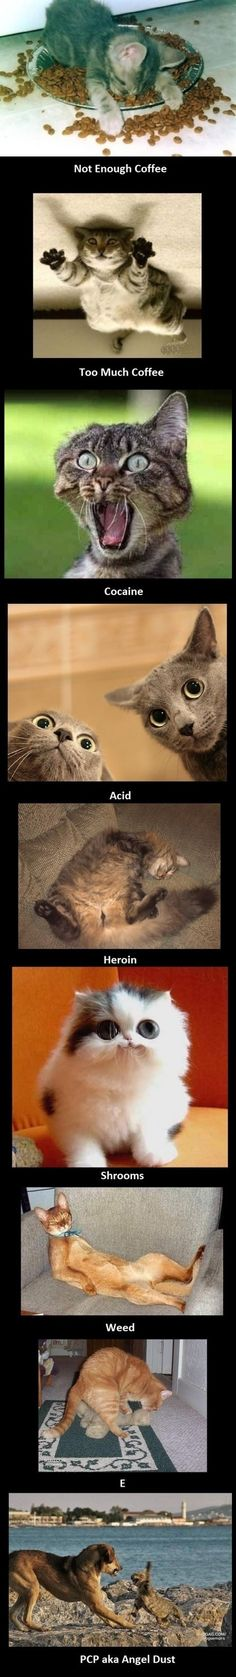 "Cats on various drugs  <a href=""http://musapg.catspray.hop.clickbank.net/""><img src=""http://www.catsprayingnomore.com/images/banners/standard/ad3.jpg"" border=""0"" alt=""Cat Spraying No More"" /></a>"